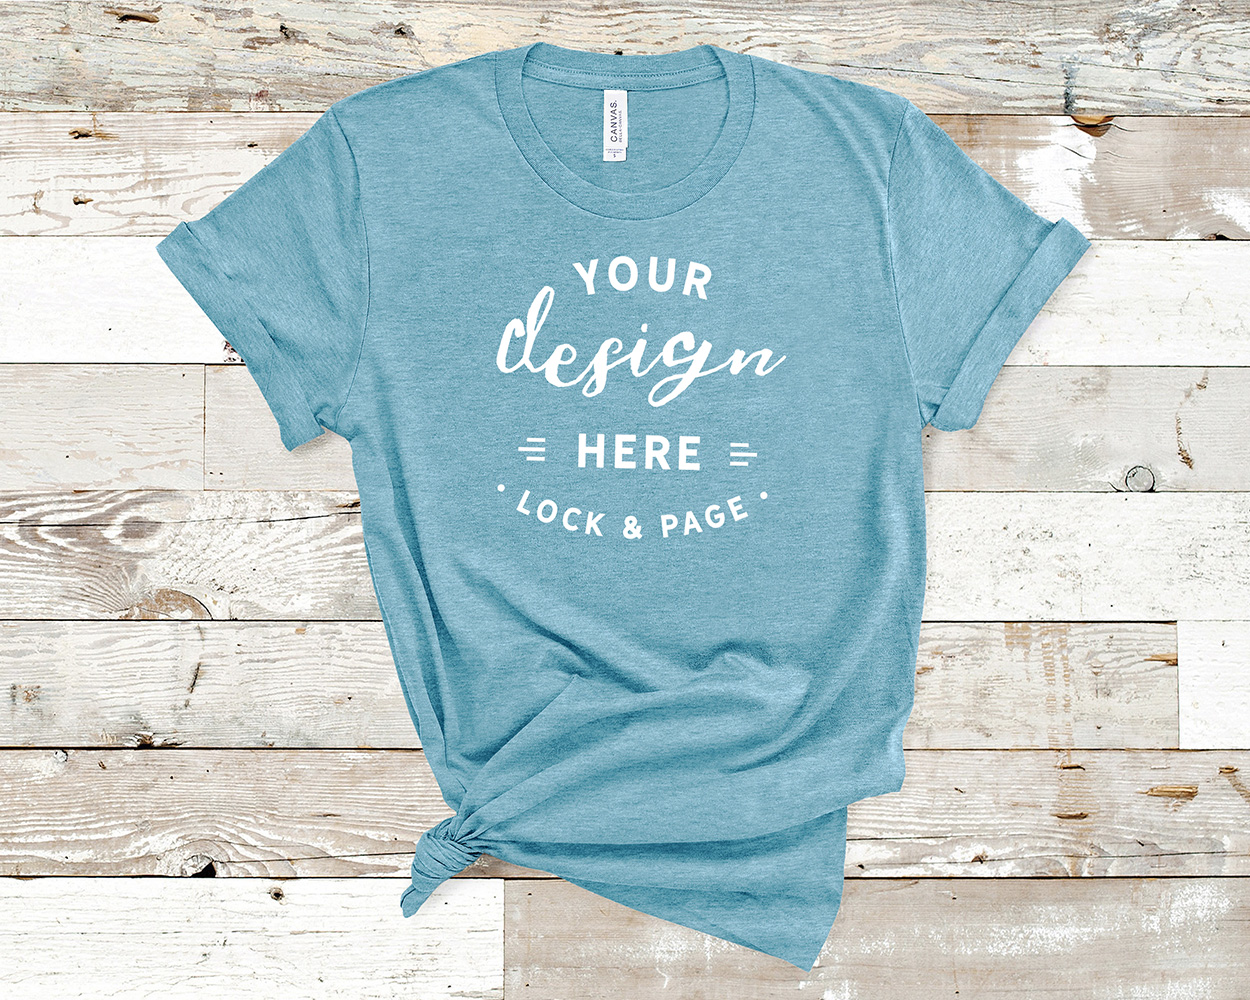 Bella Canvas 3001 Mockup T-Shirt Bundle All Colors On Wood example image 16